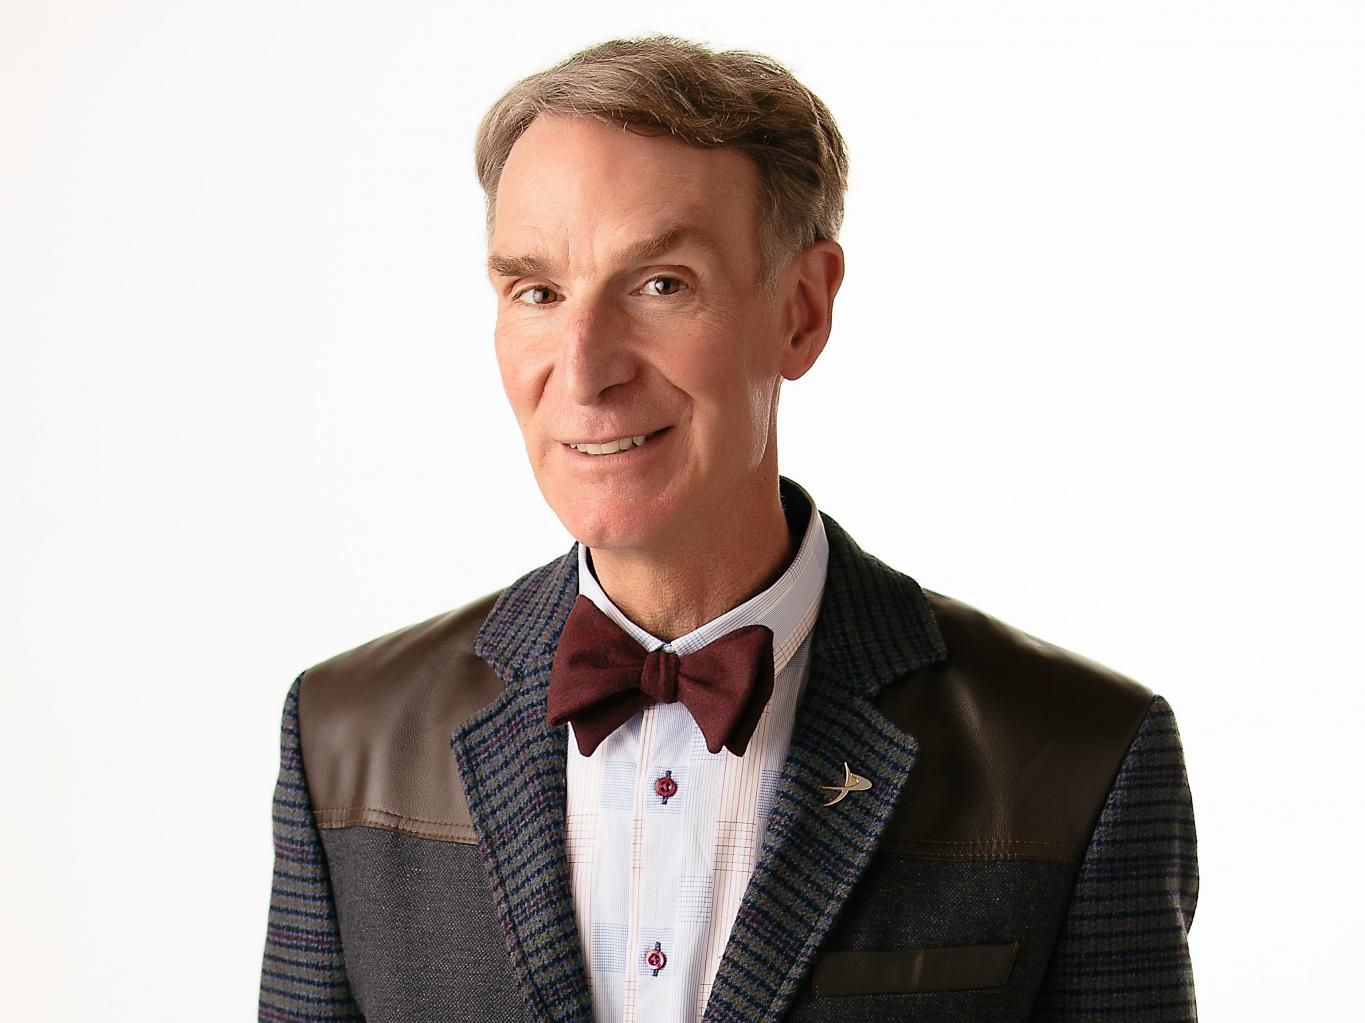 Bill Nye Saves The World '  To Give Netflix a New Take on Talk Shows